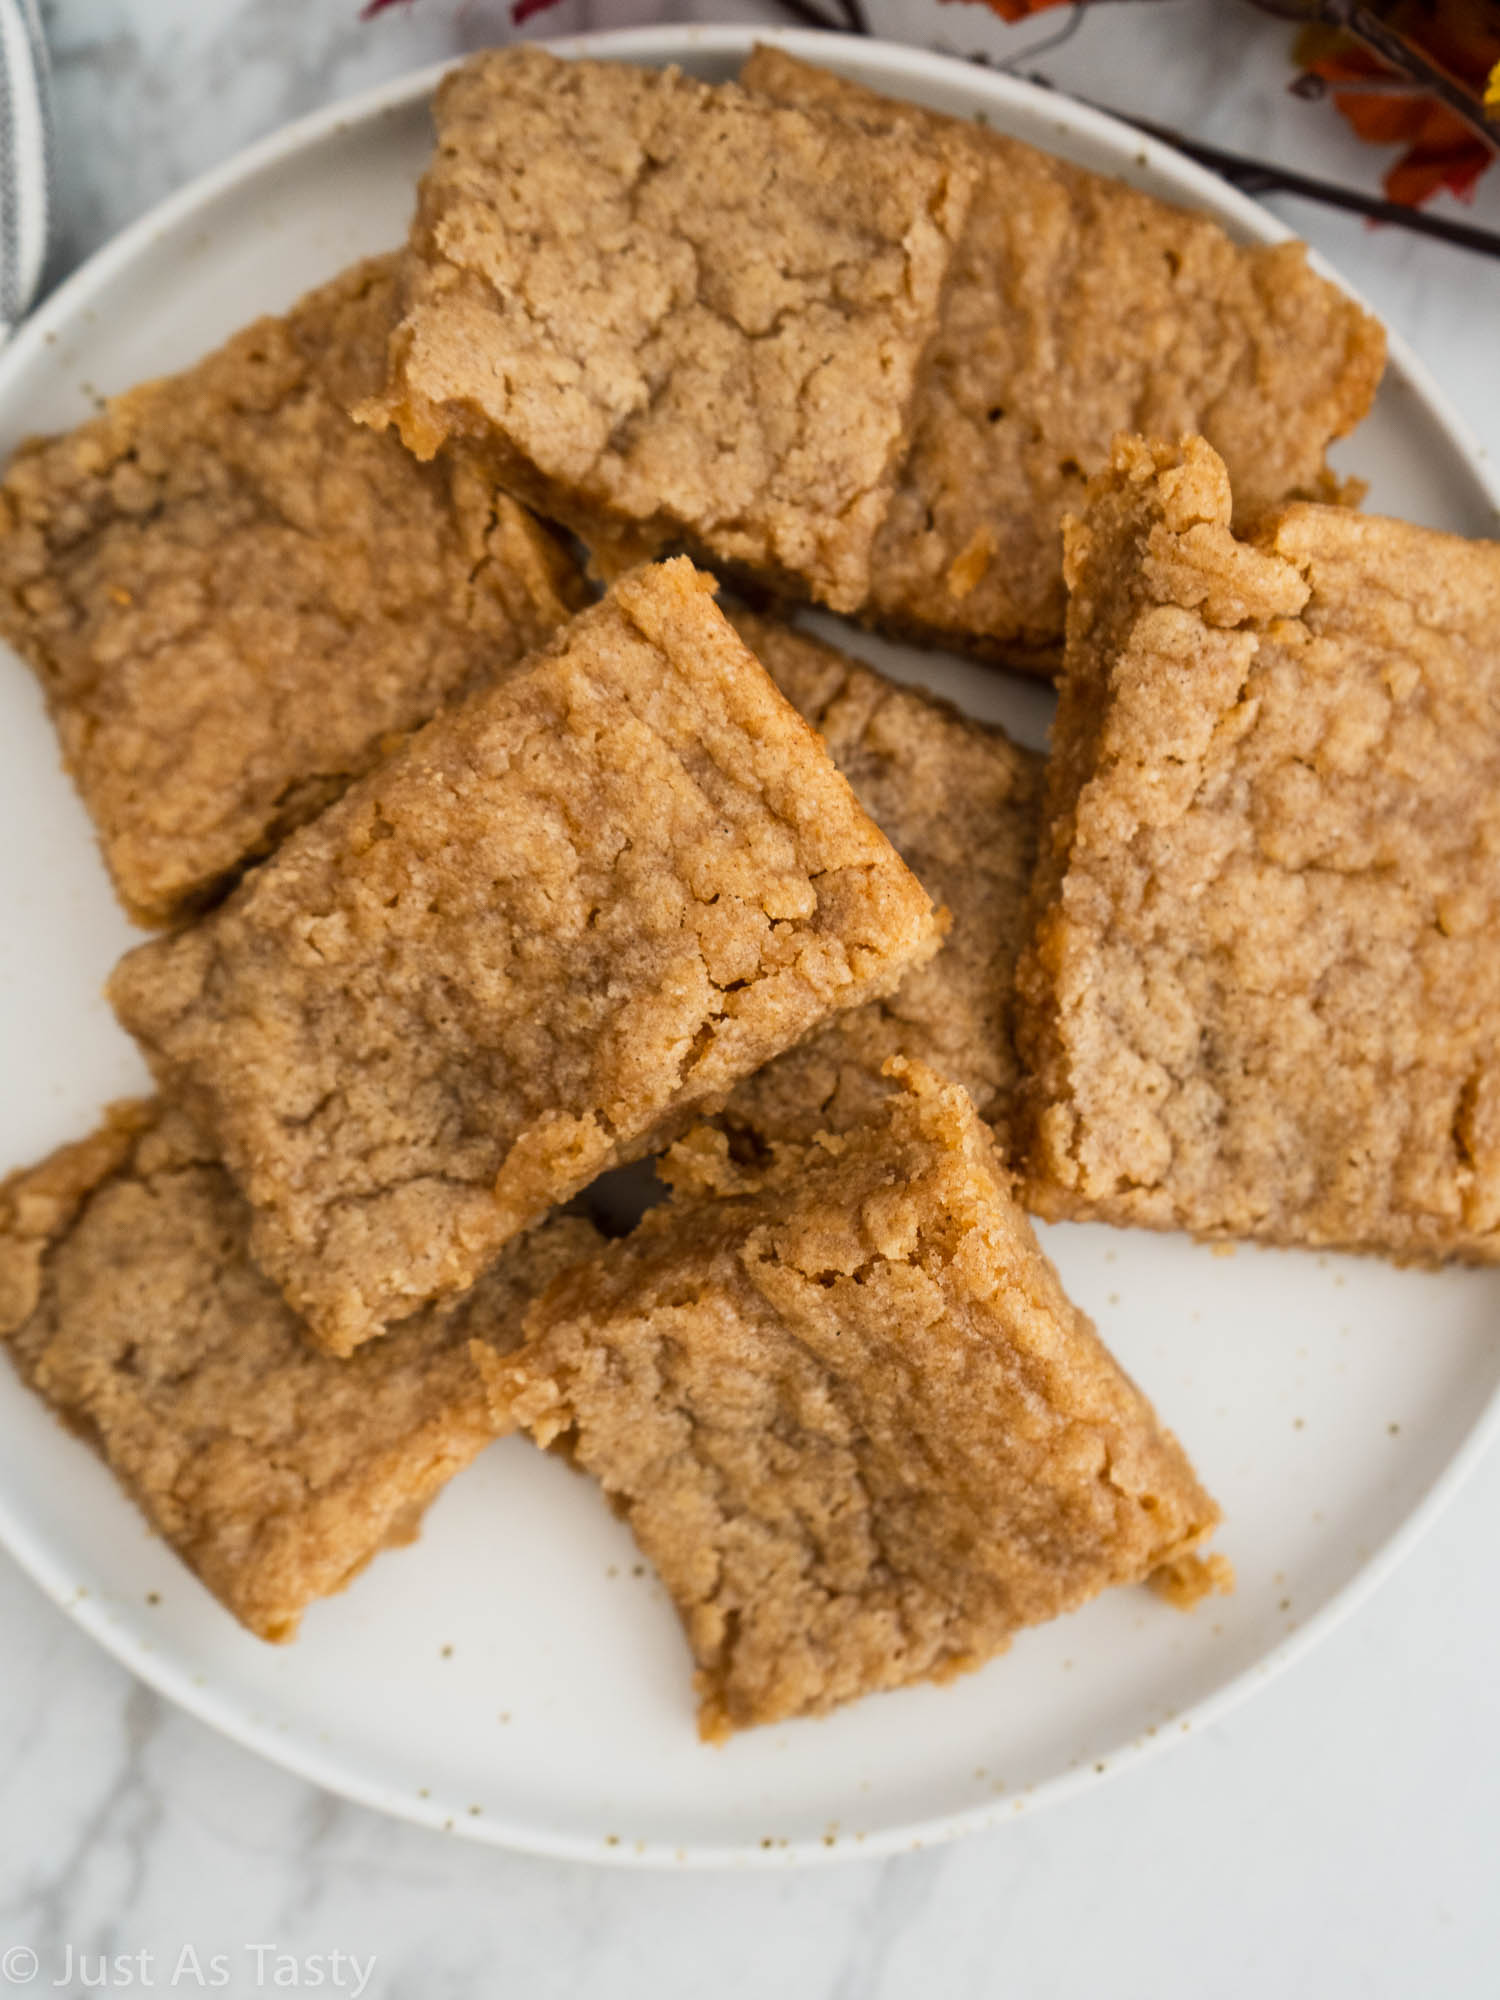 Blonde brownies piled onto a white plate.